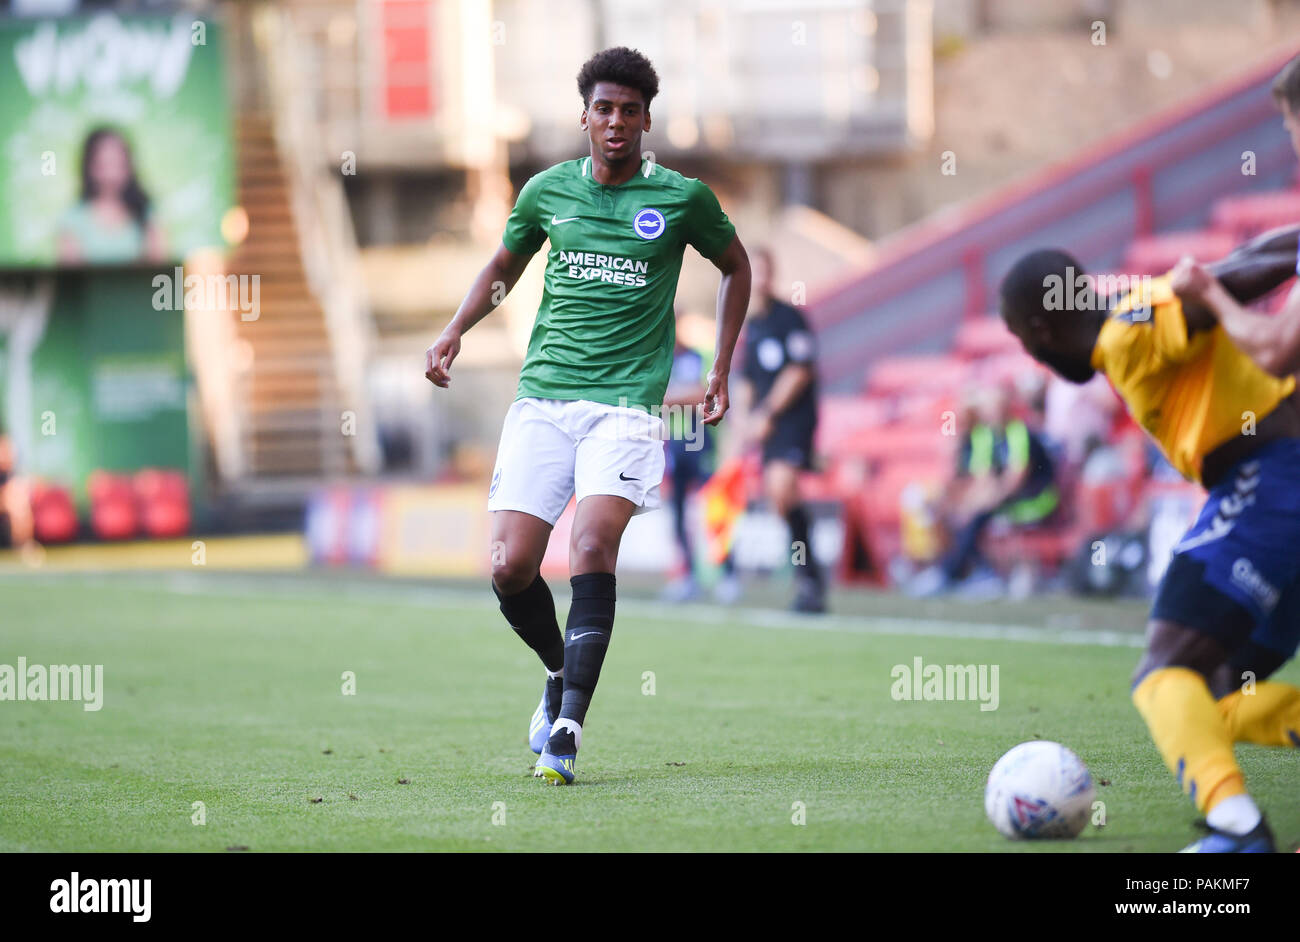 London UK 24th July 2018 - Bernardo of Brighton during the pre season friendly football match between Charlton Athletic and Brighton and Hove Albion  at The Valley stadium   Credit: Simon Dack/Alamy Live News - Stock Image